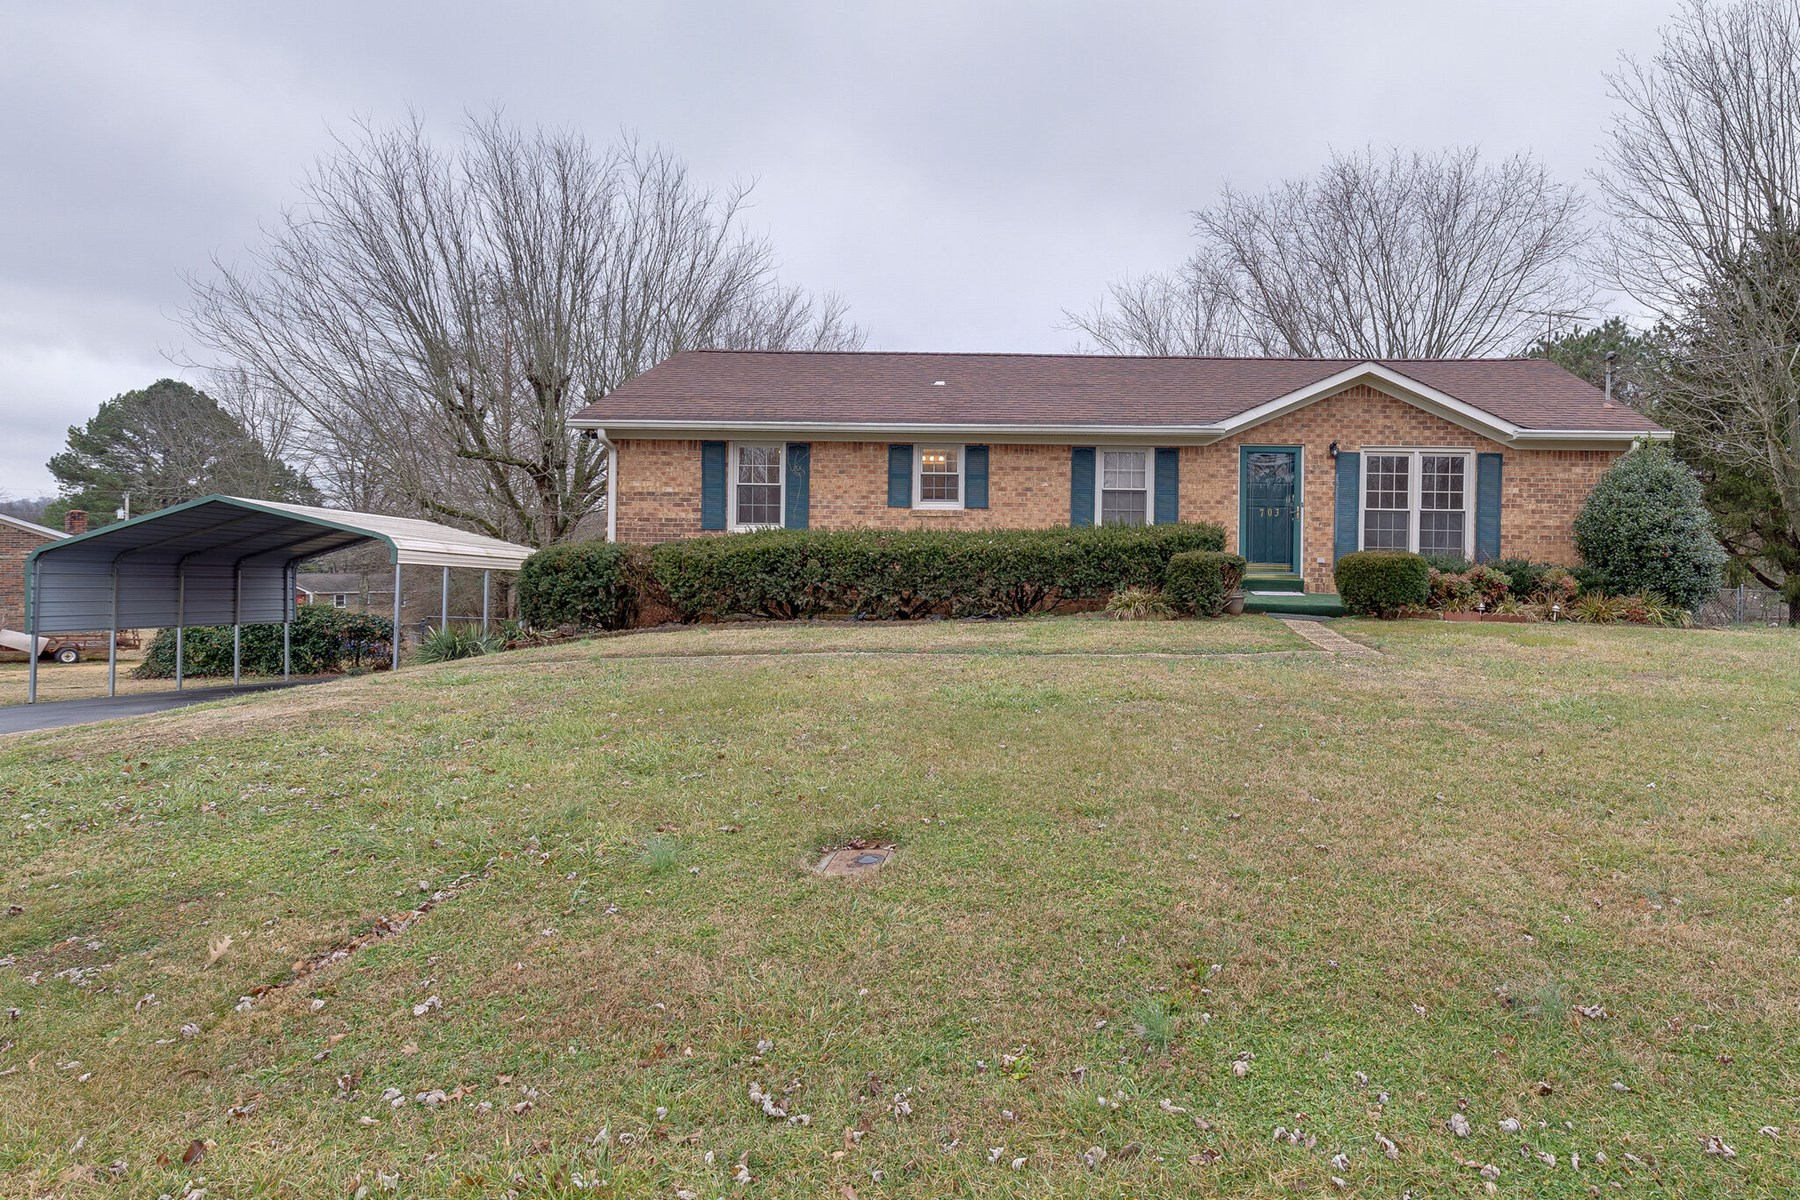 Home for Sale in Sagewood Subdivision in Columbia, Tennessee